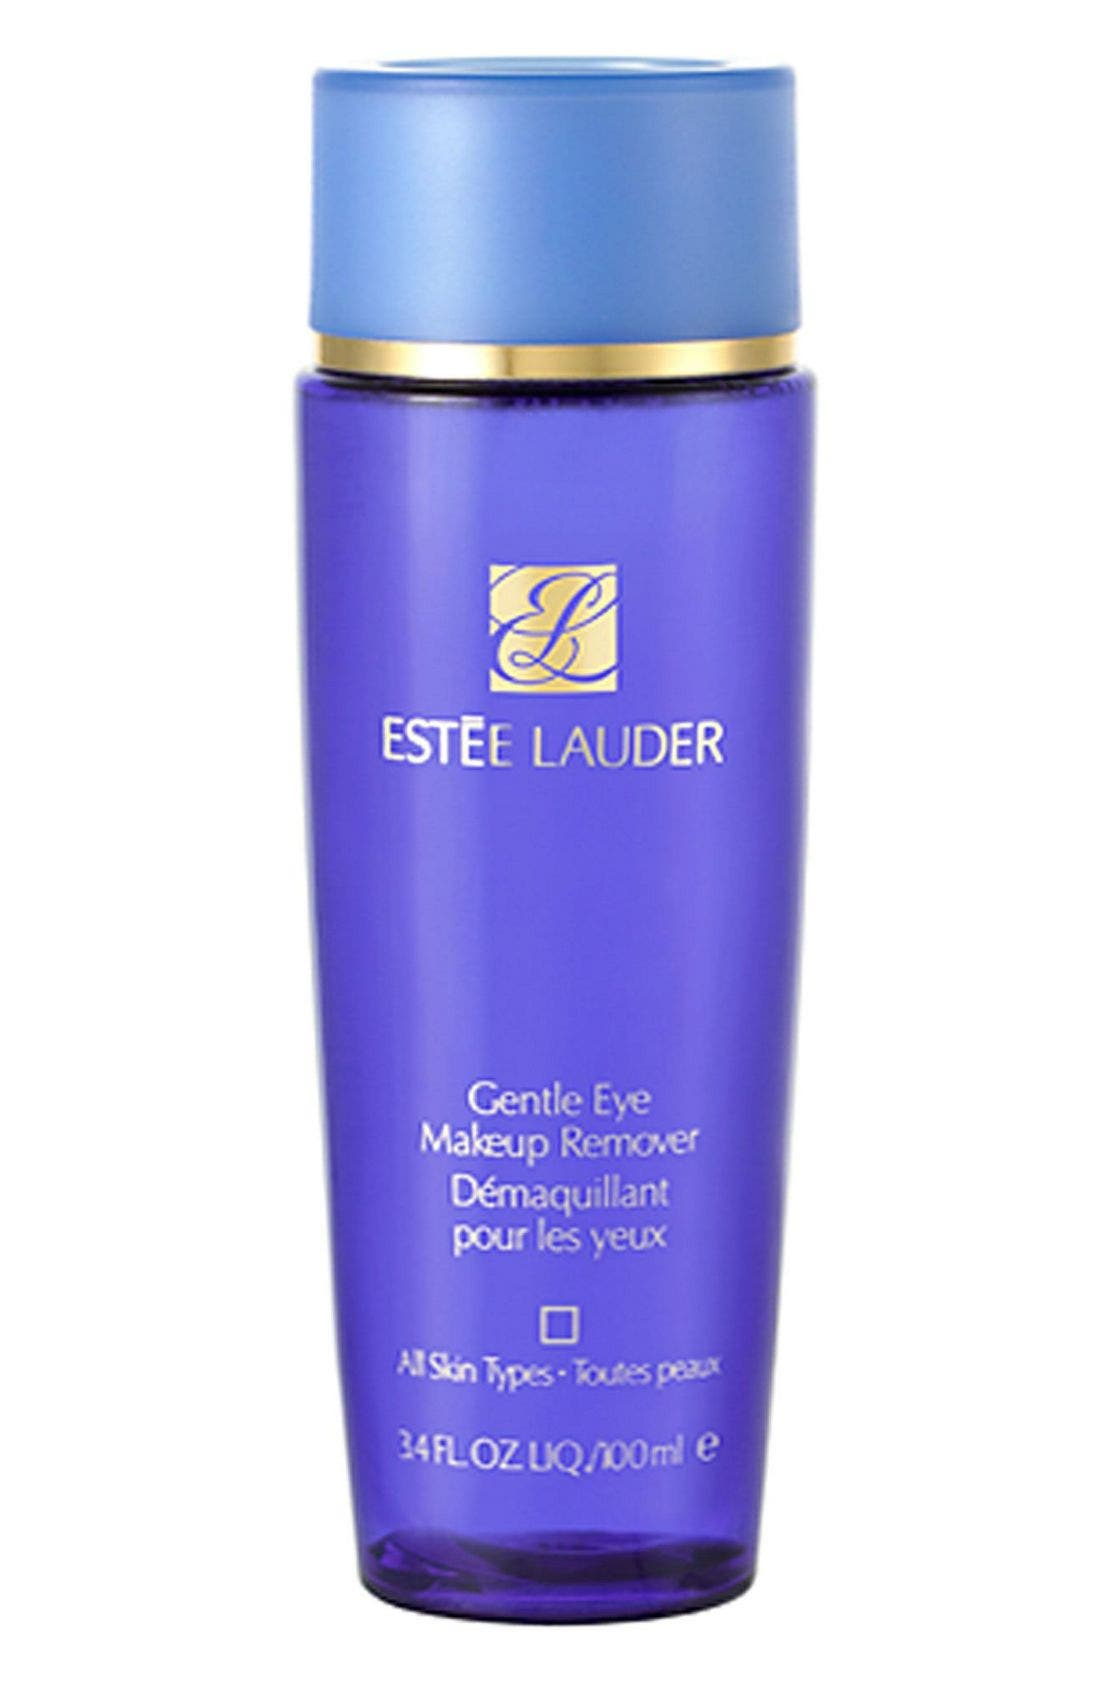 Estée Lauder Gentle Eye Makeup Remover